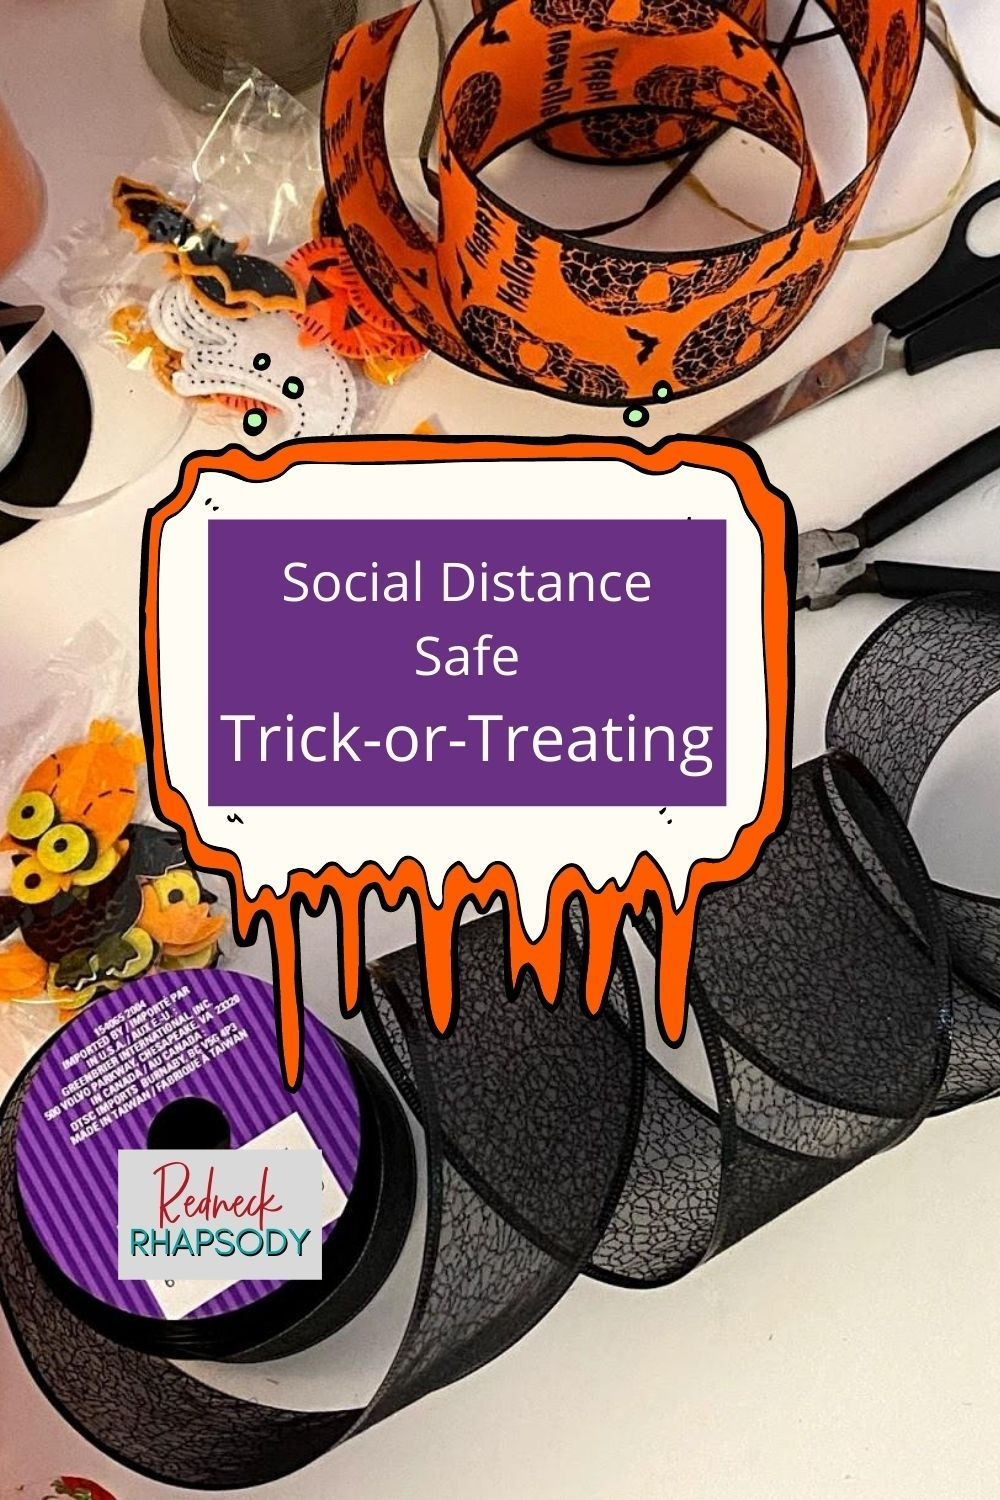 Trick or Treating Safety Infographic Kid, The o'jays and